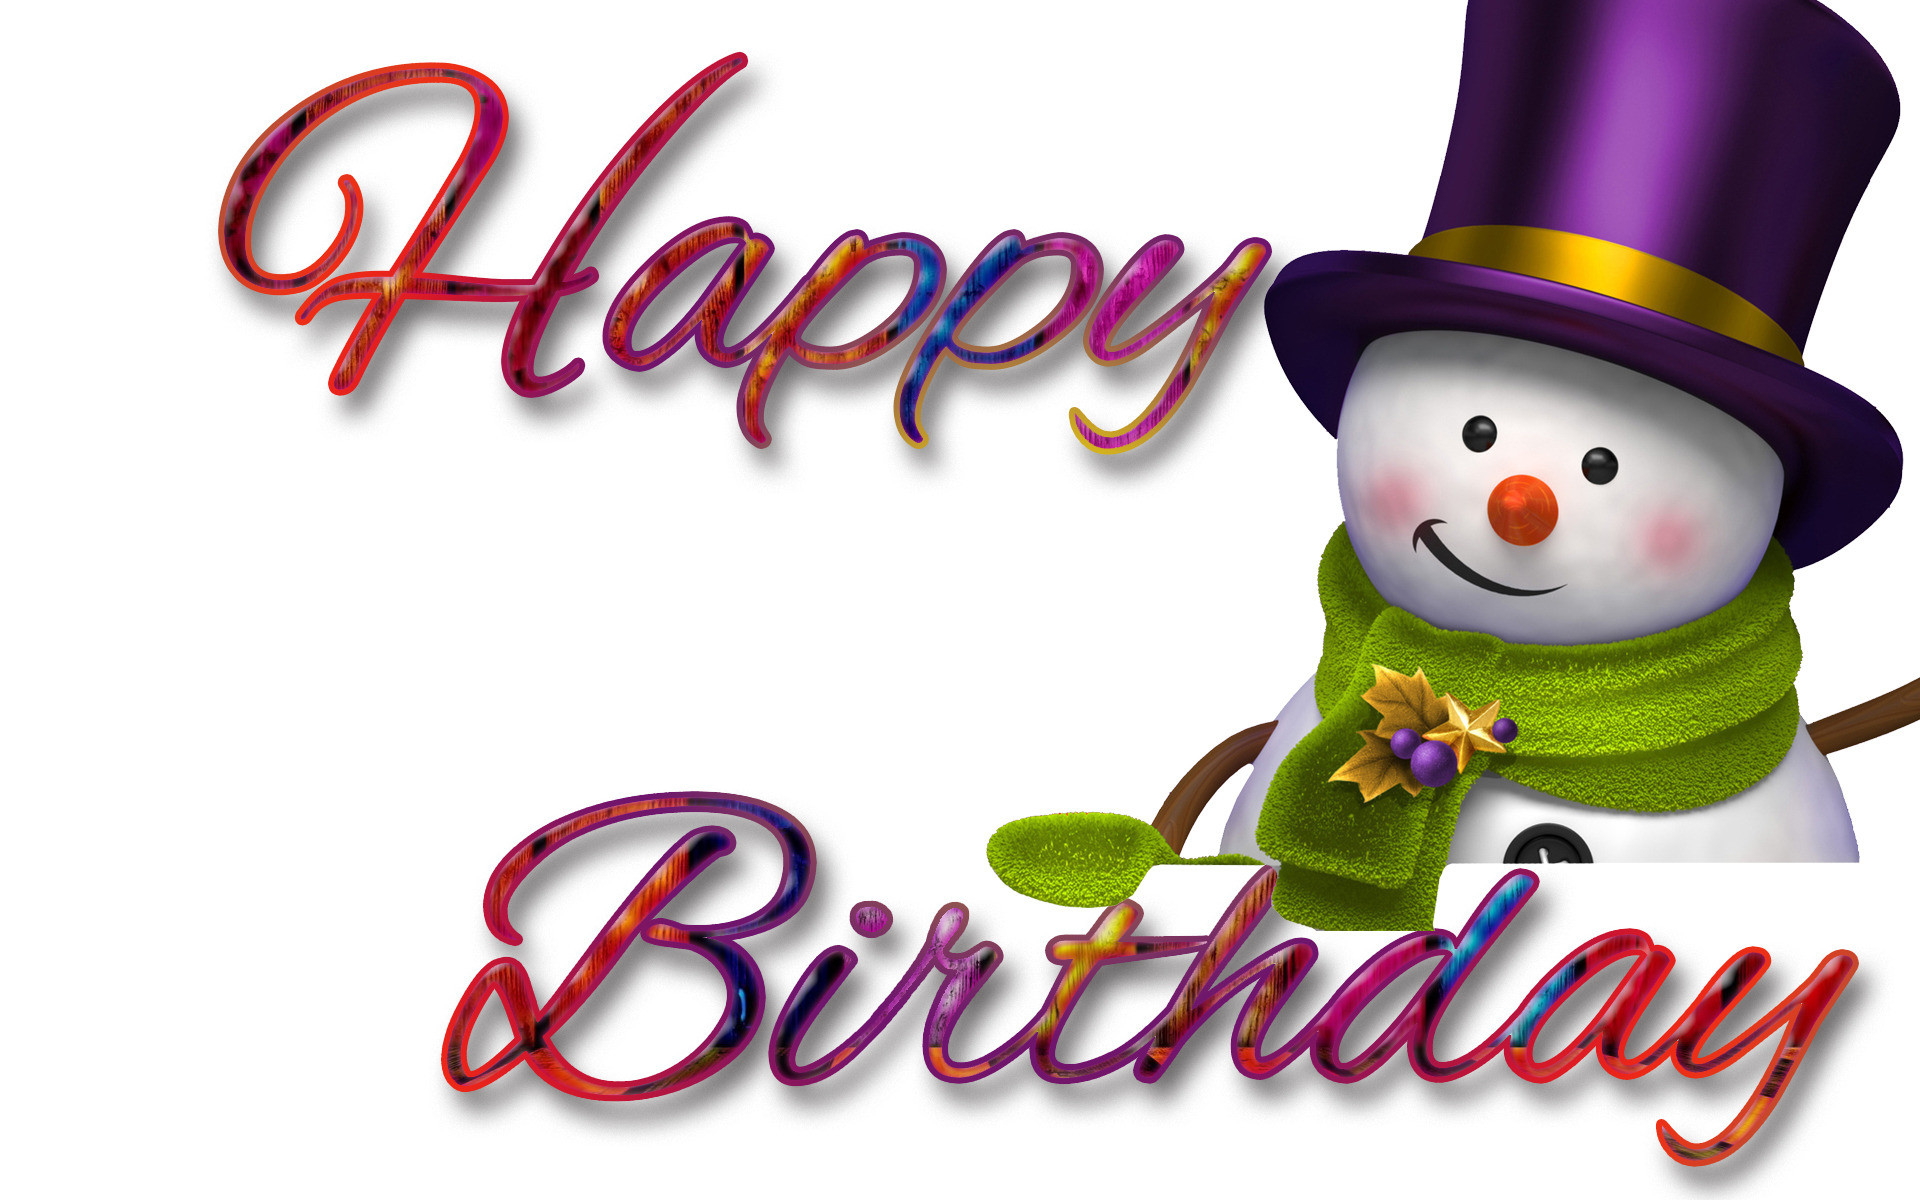 Happy Birthday Wallpaper Hd With Name - Happy Birthday Wishes For Friend Quotes In Hindi , HD Wallpaper & Backgrounds